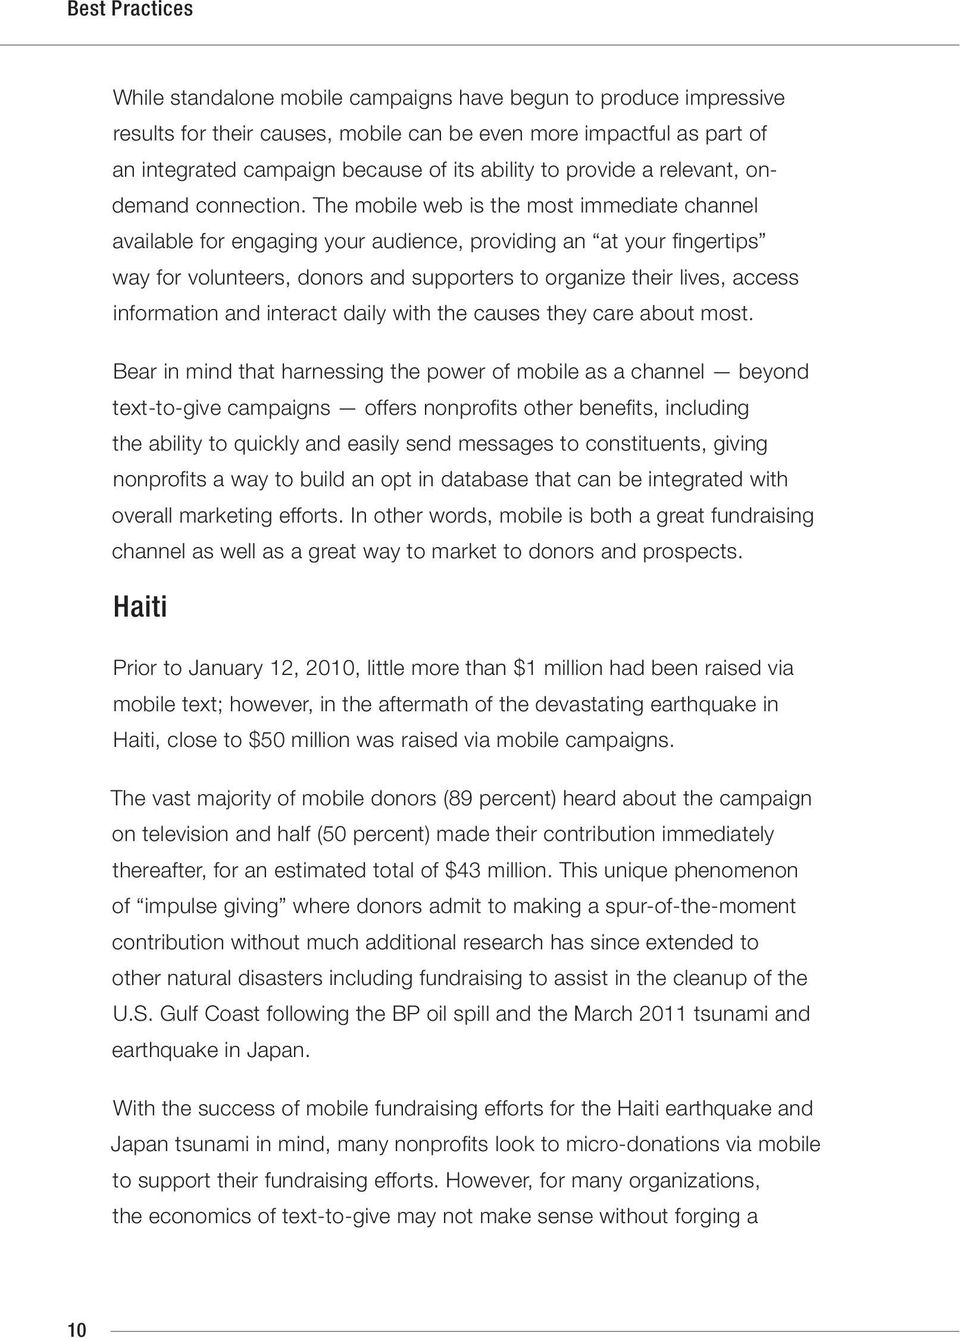 The mobile web is the most immediate channel available for engaging your audience, providing an at your fingertips way for volunteers, donors and supporters to organize their lives, access